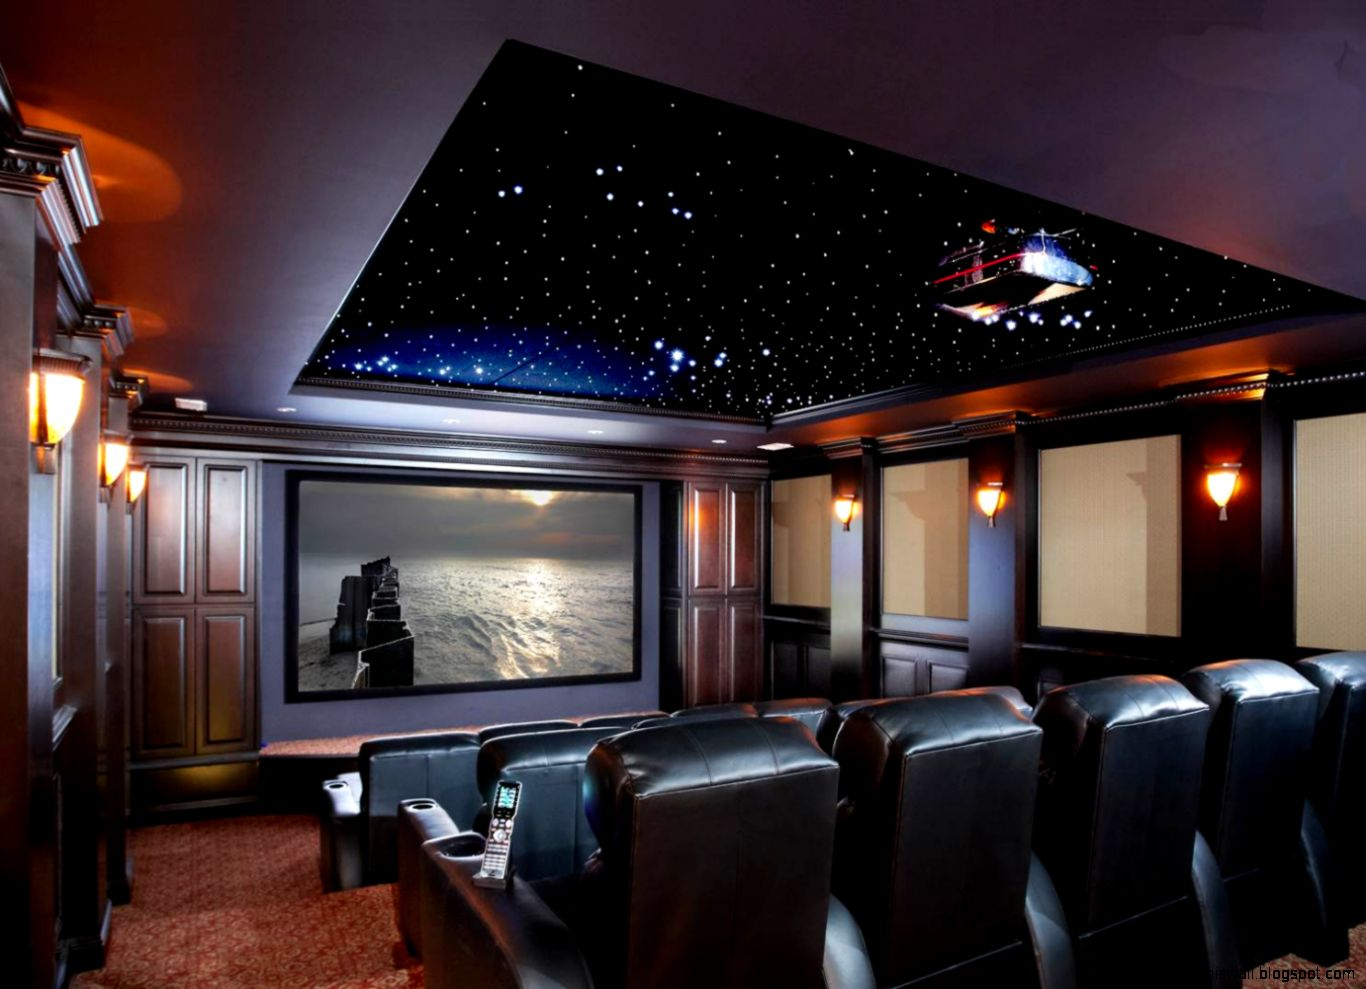 Home theater design magazine this wallpapers - Home theater wallpaper ...